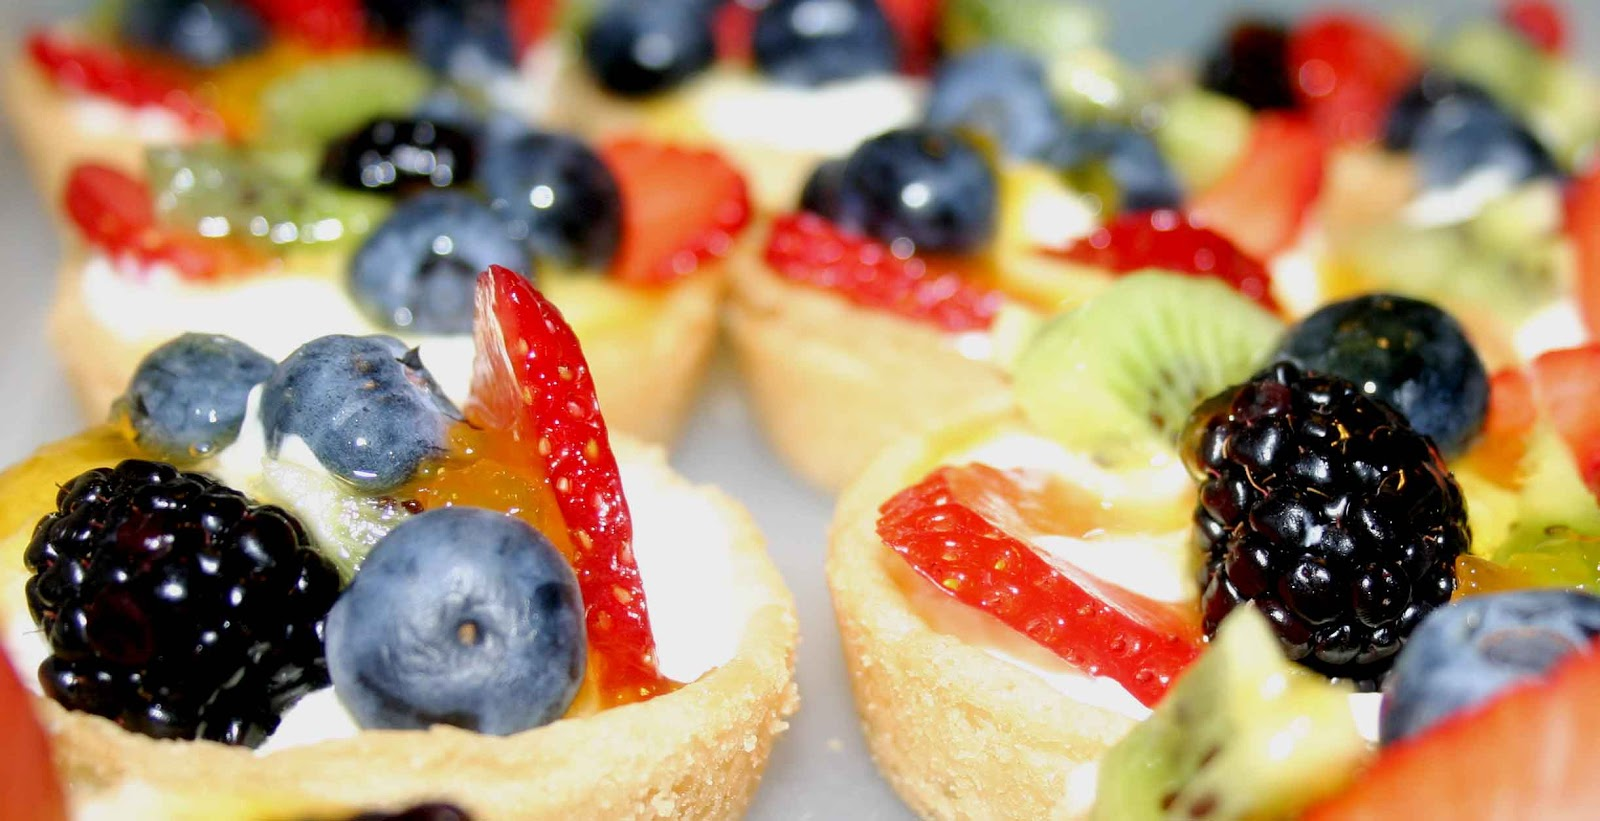 It's So Tasty Too!: Andrea's Sugar Cookie Fruit Tarts